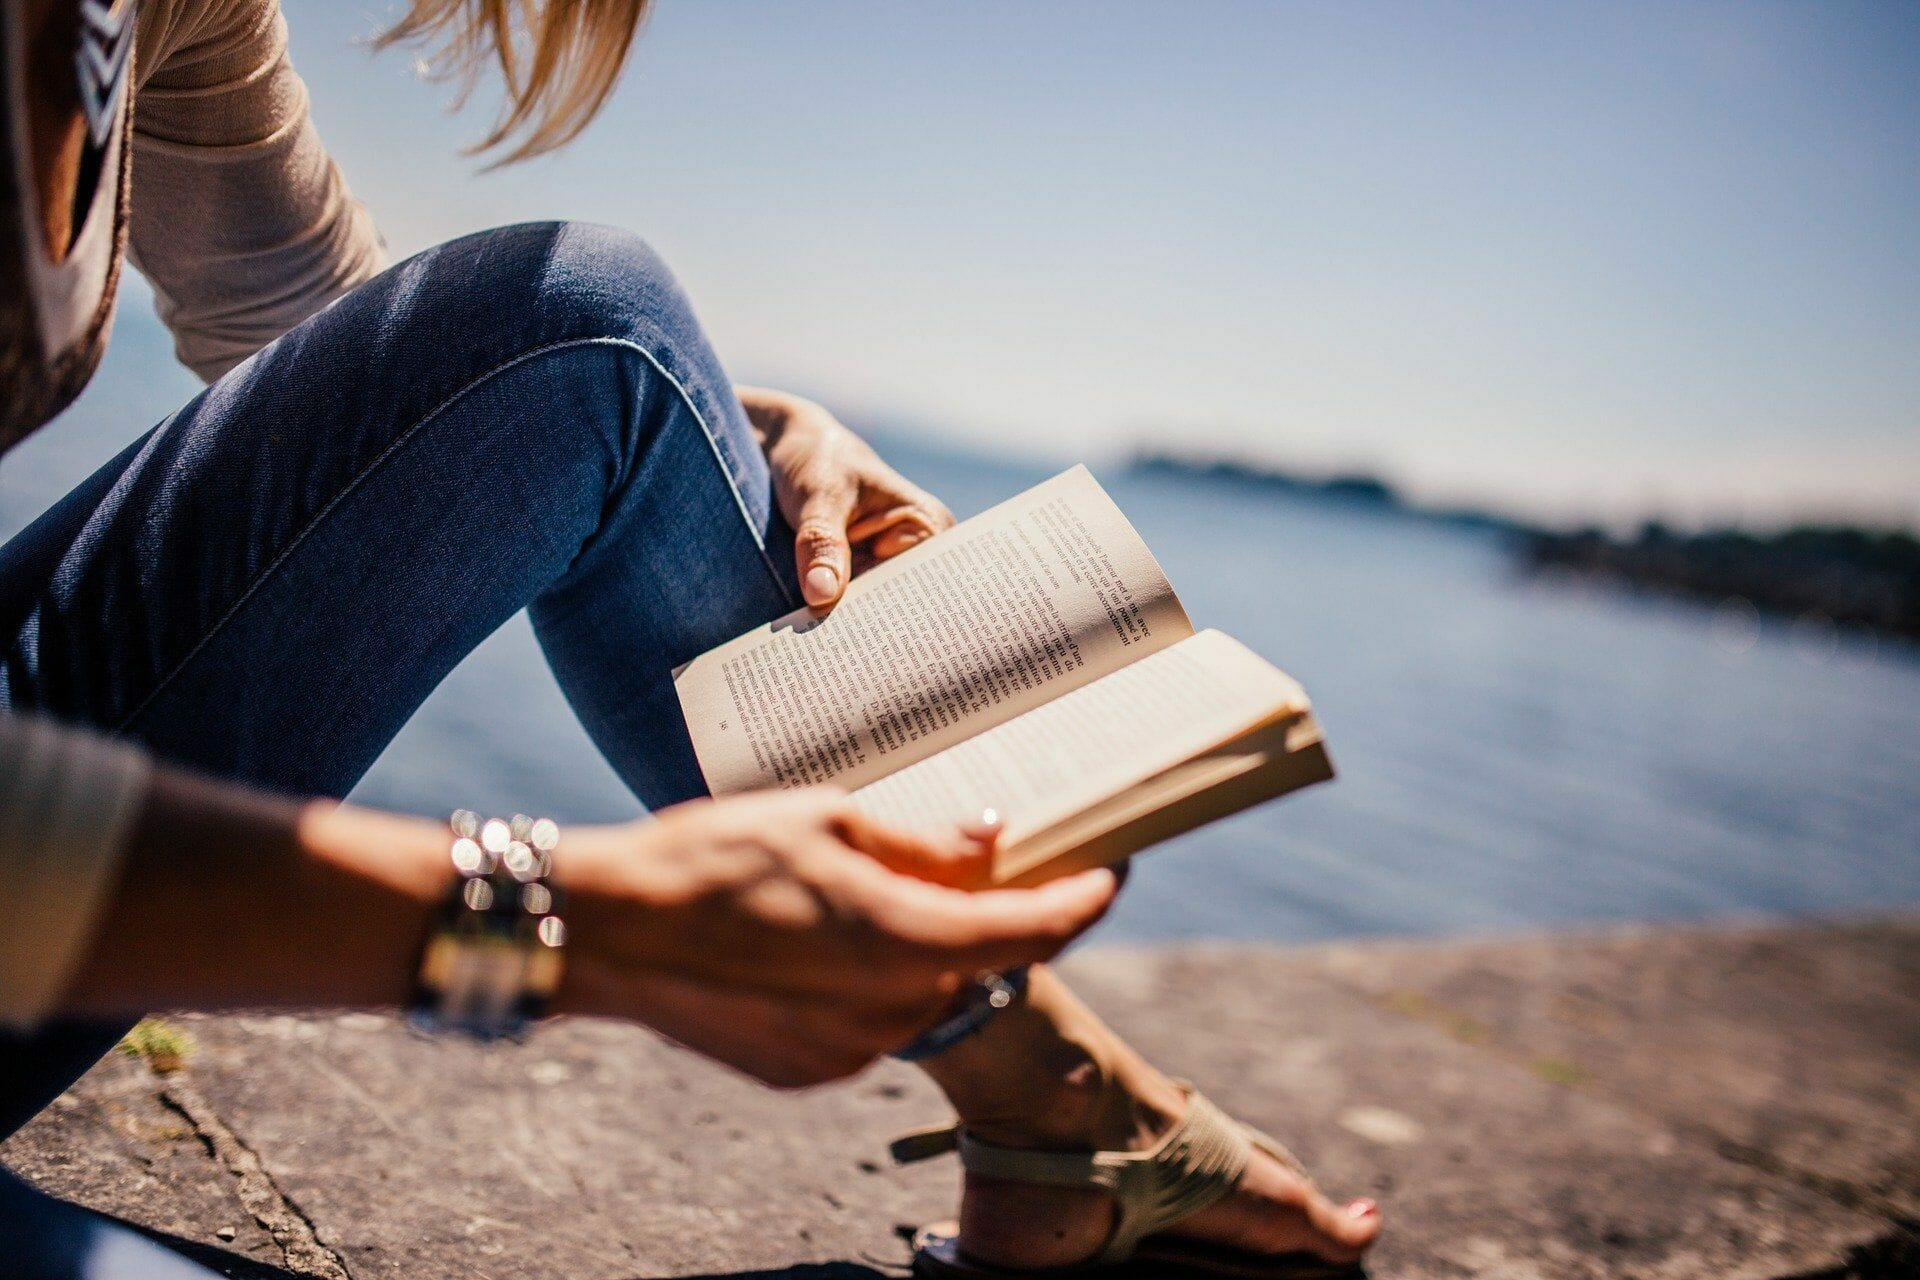 How to Stay Focused While Reading: 7 Perfect Tips via @allamericanatlas